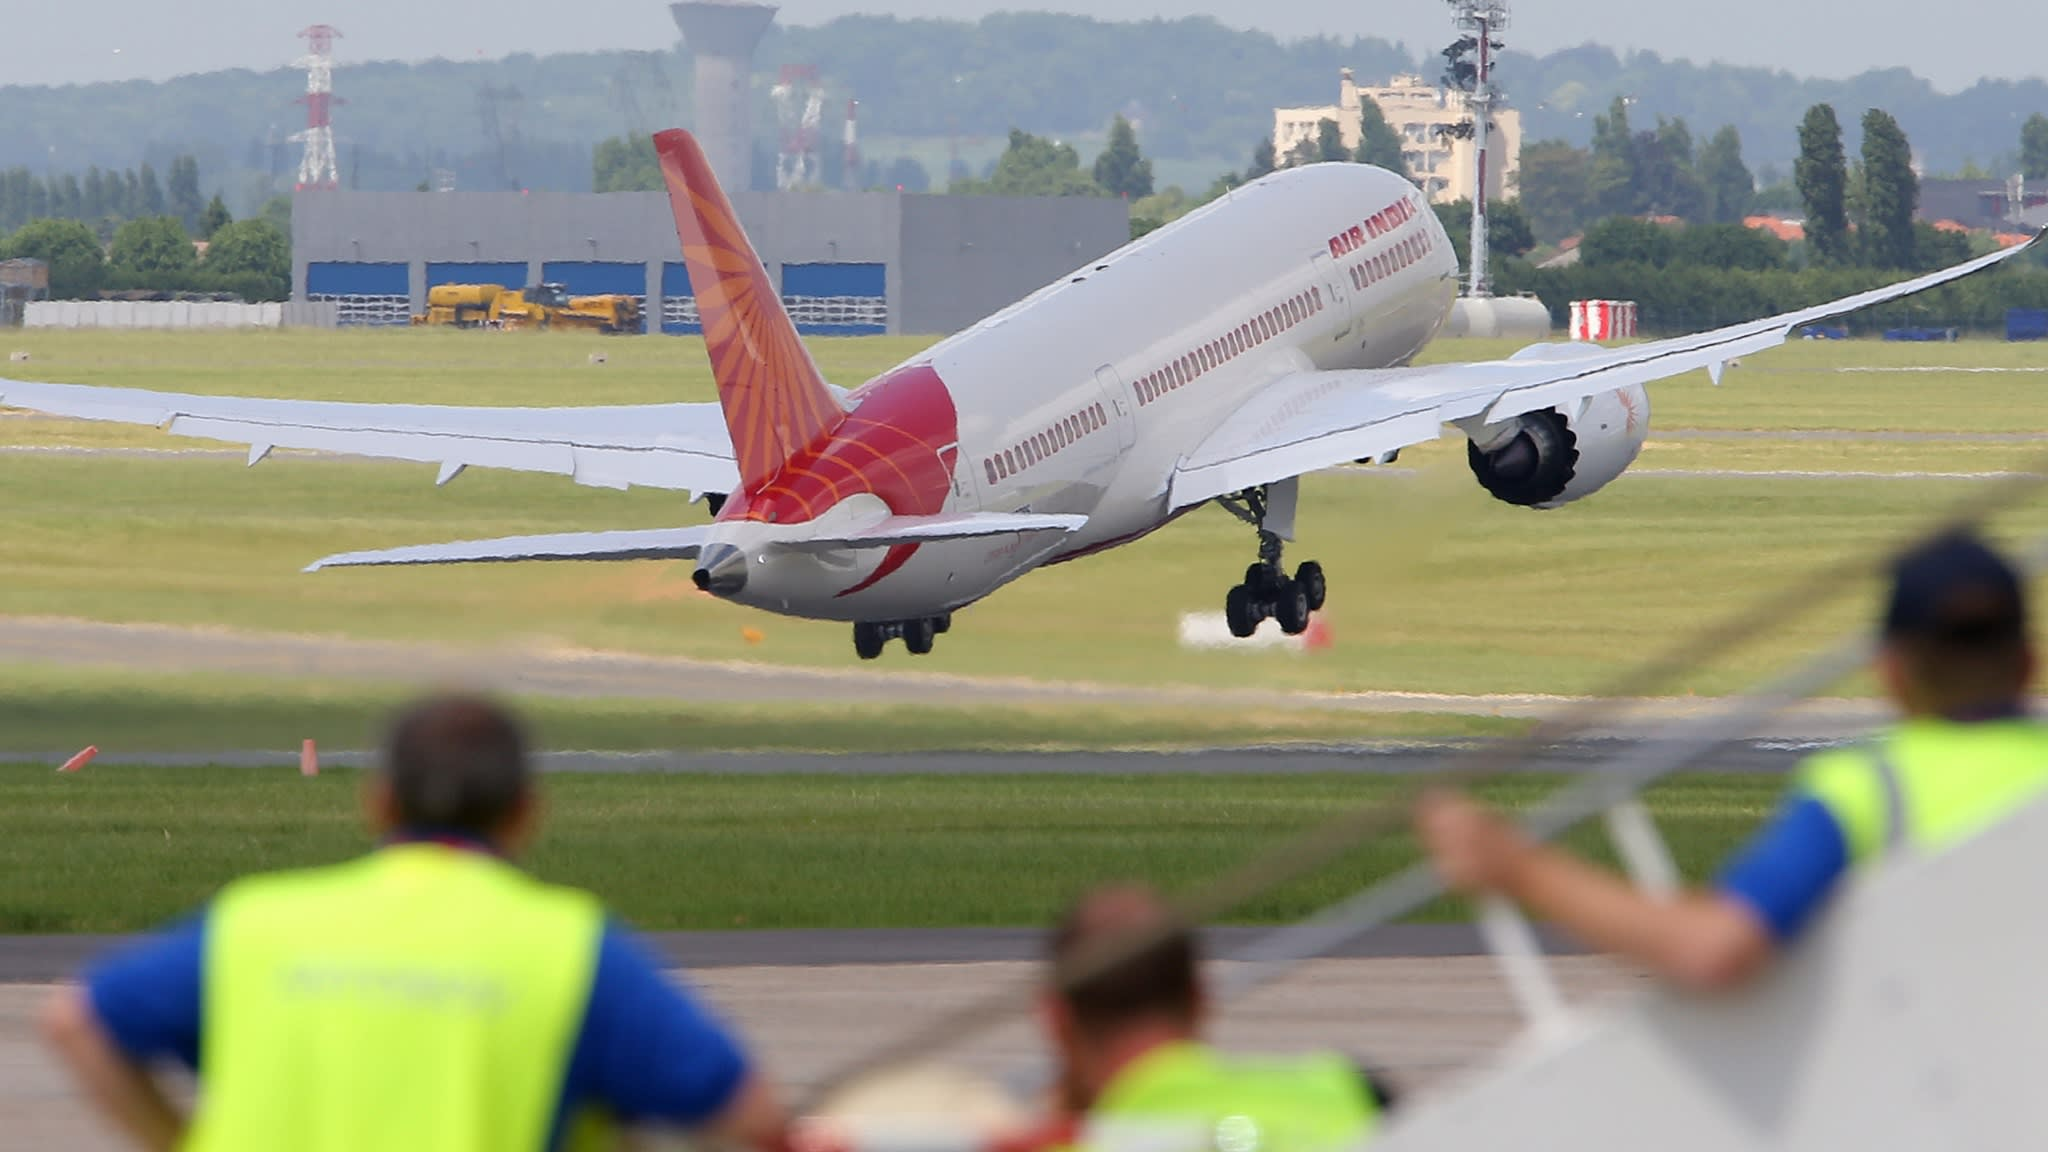 An Air India Airlines Boeing 787 dreamliner takes off.